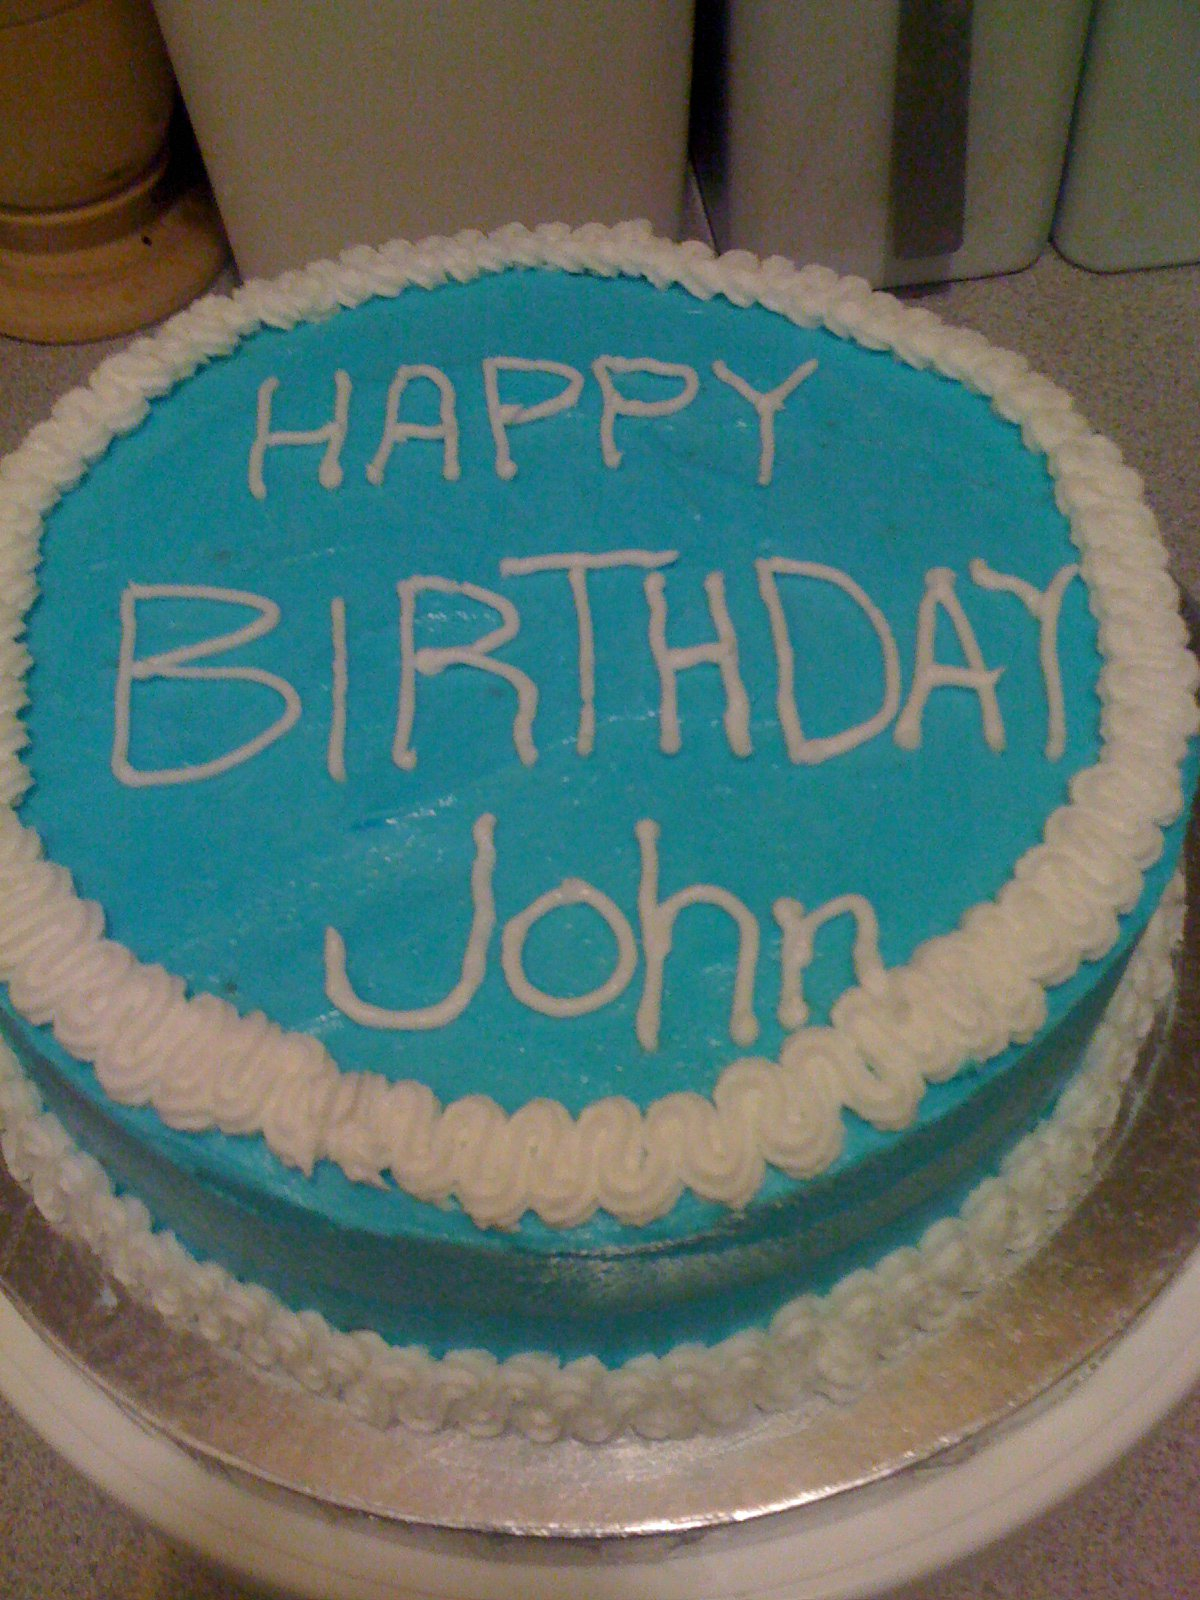 Birthday Cake For John : The Protean Libran: Wilton Class #2 -- SpongeBob Birthday ...